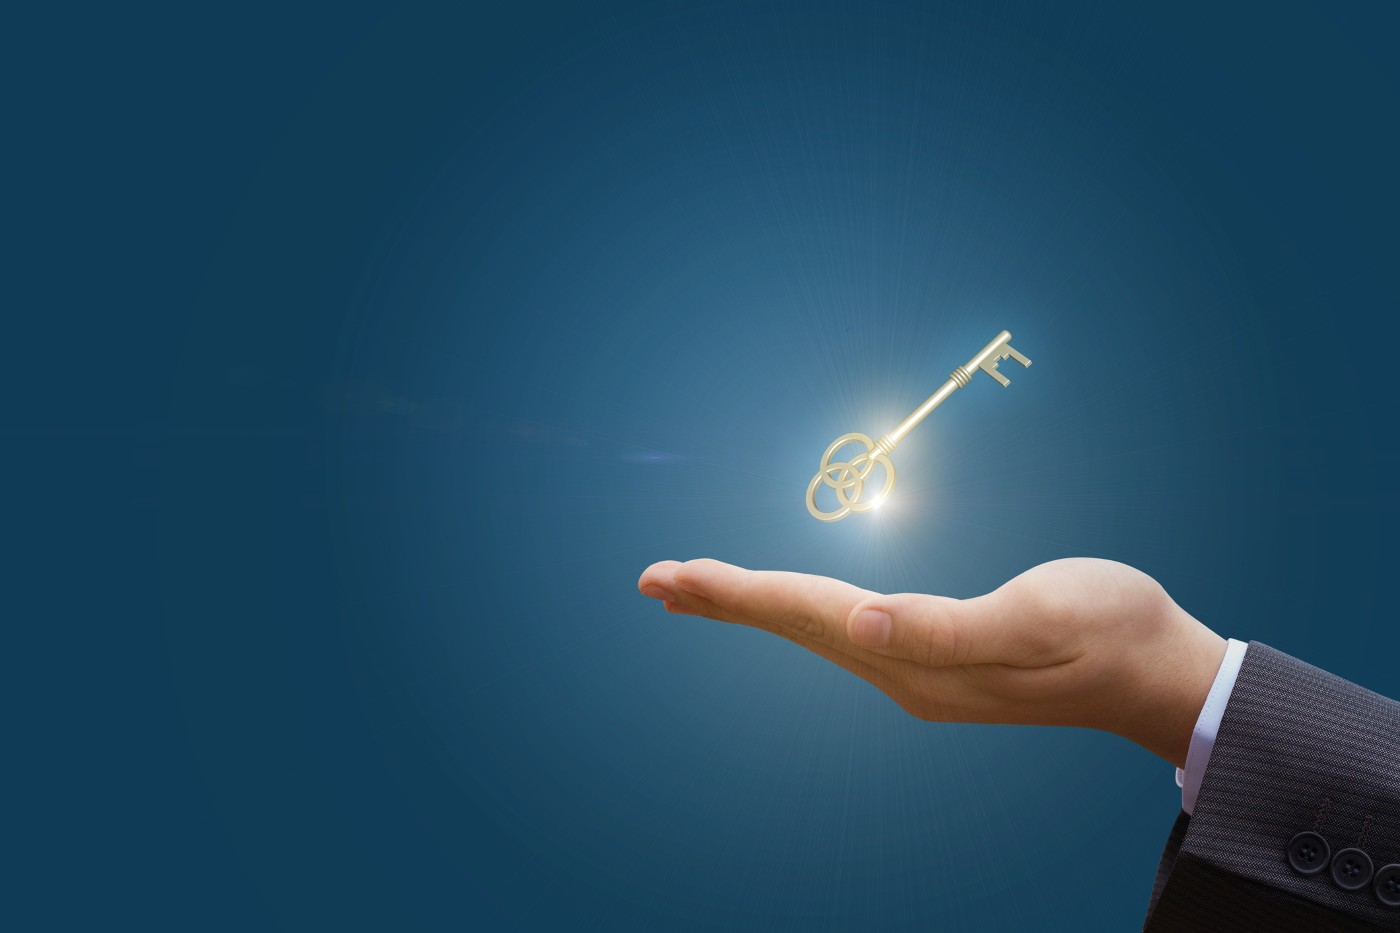 https://tickertapecdn.tdameritrade.com/assets/images/pages/md/Hand holding a golden key: How to manage trading success